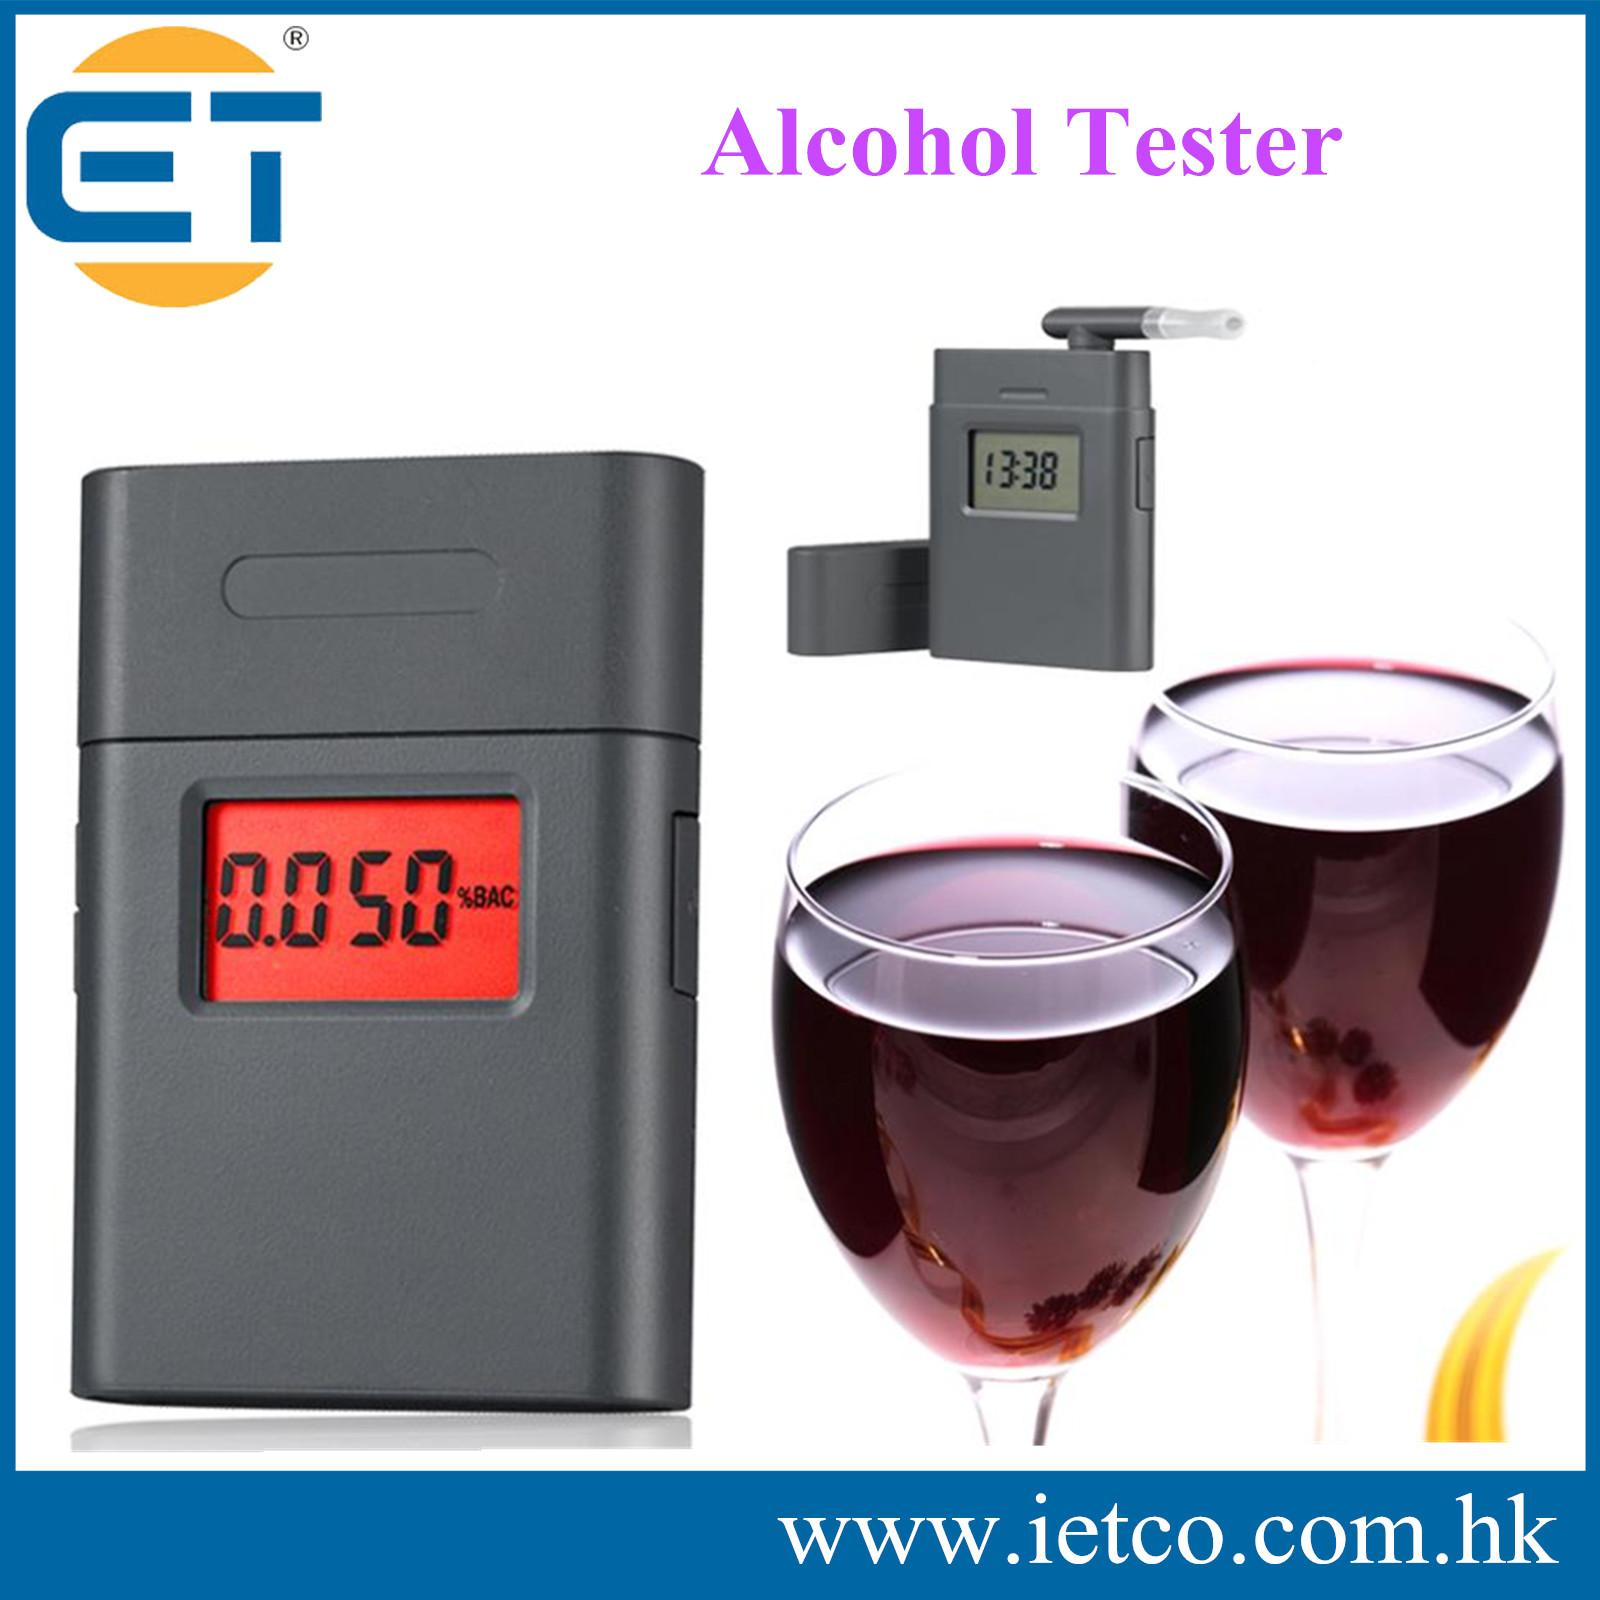 LCD Display Digital Breath Alcohol Tester Breathalyzer Driving BAC Analyzer(China (Mainland))